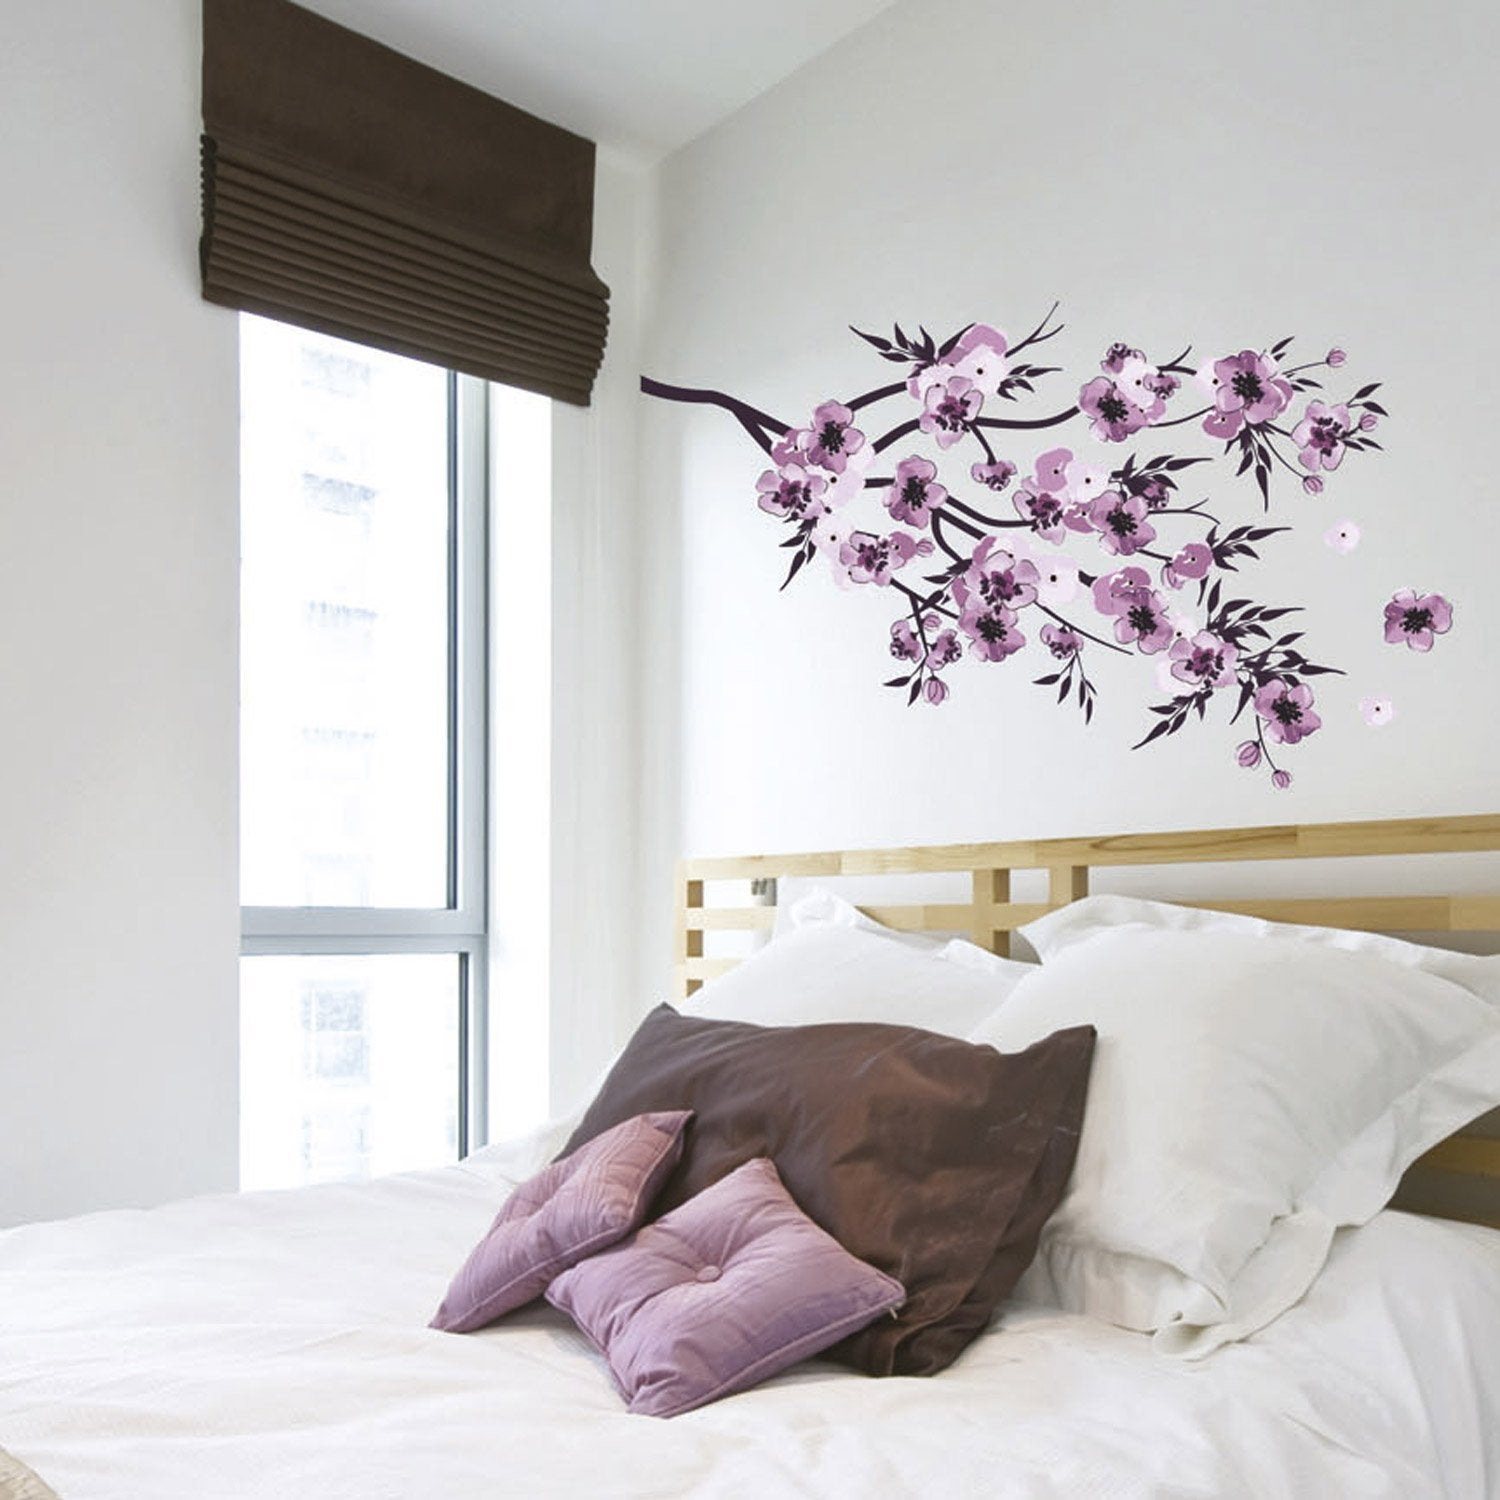 sticker fleurs aquarelle 50 cm x 70 cm leroy merlin. Black Bedroom Furniture Sets. Home Design Ideas